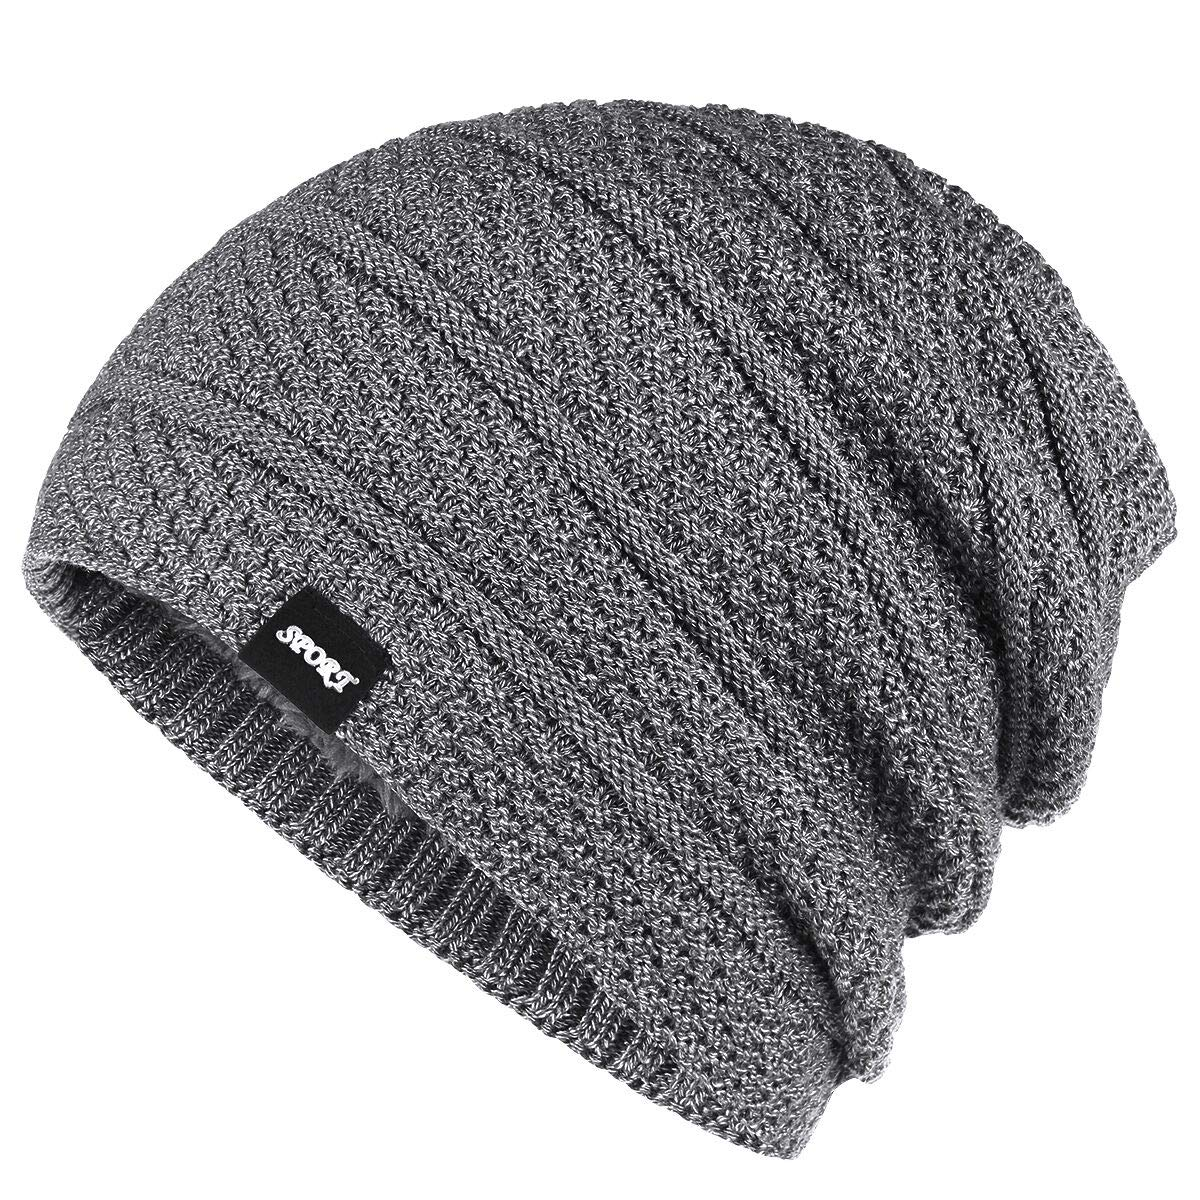 7e8e47240a8 Bodvera Winter Knit Wool Warm Hat Thick Soft Stretch Slouchy Beanie Skully  Cap Navy product image